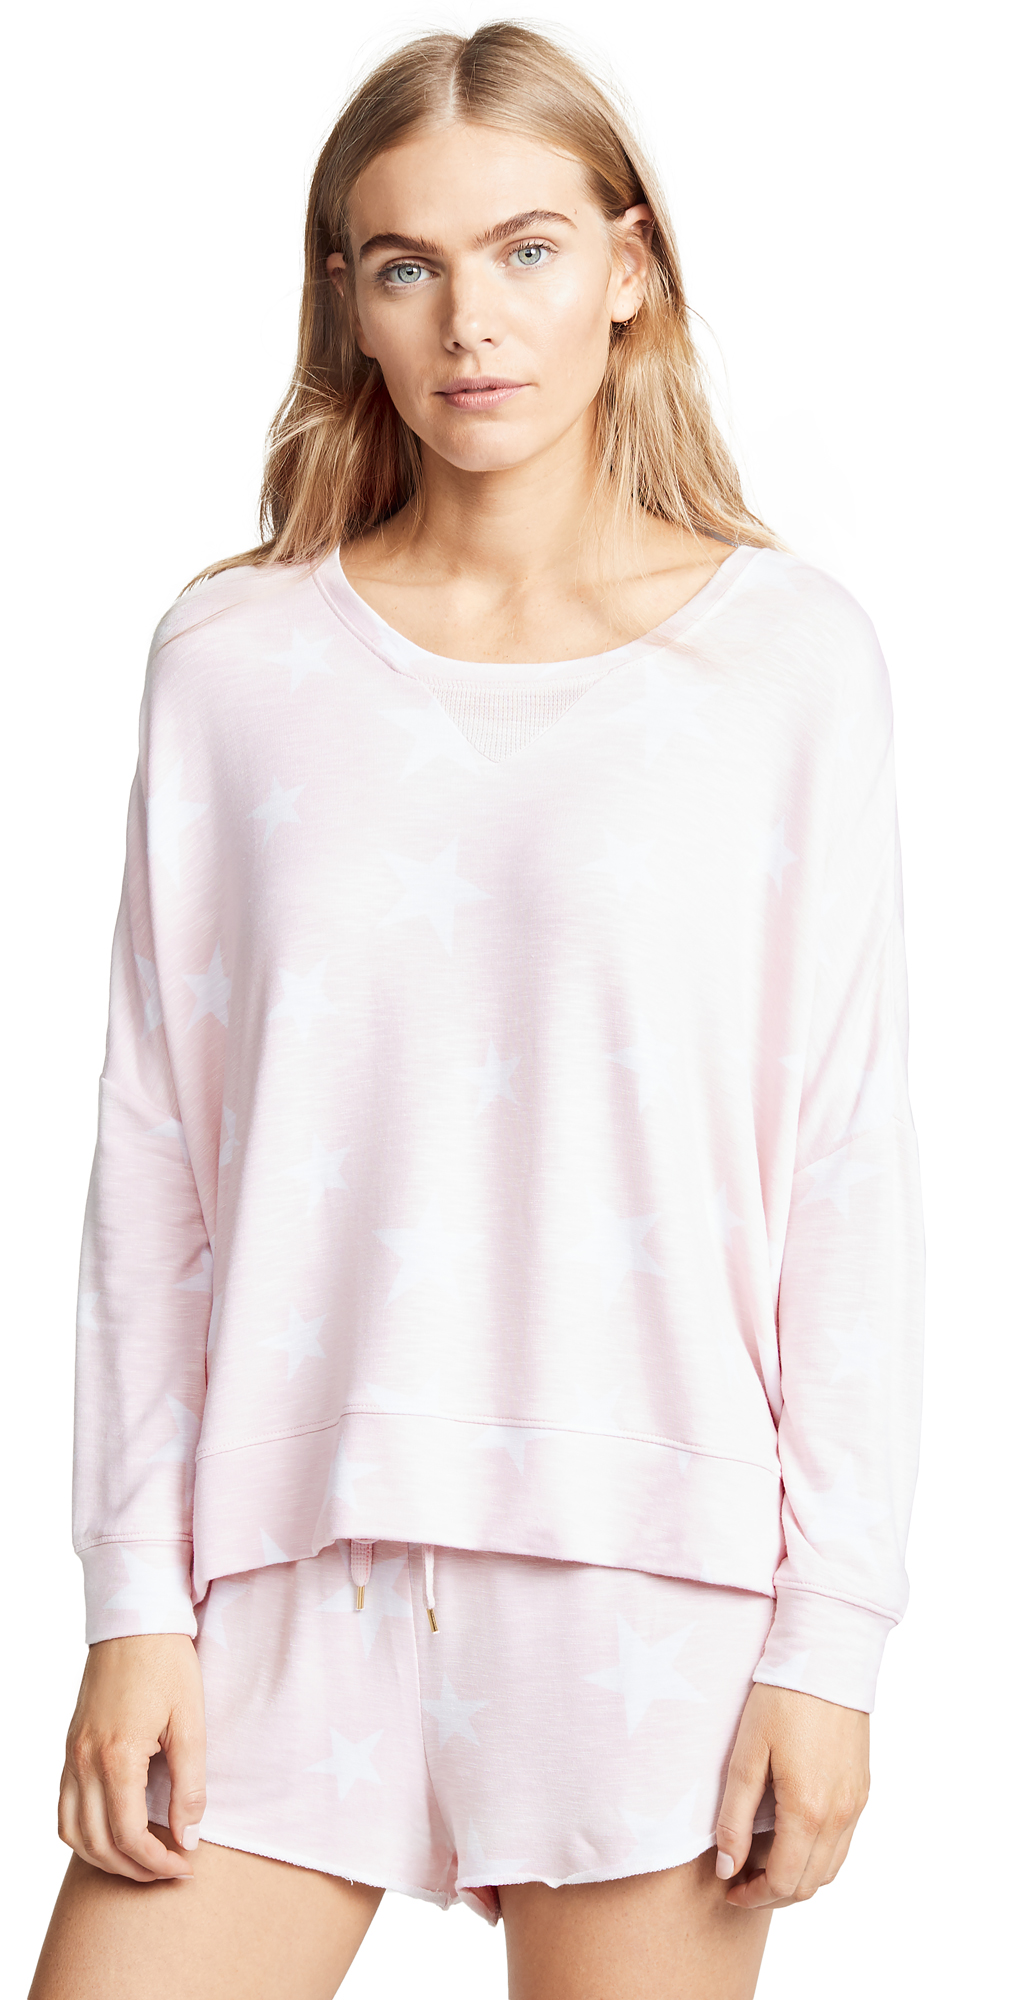 Honeydew Intimates Starlight Sweatshirt